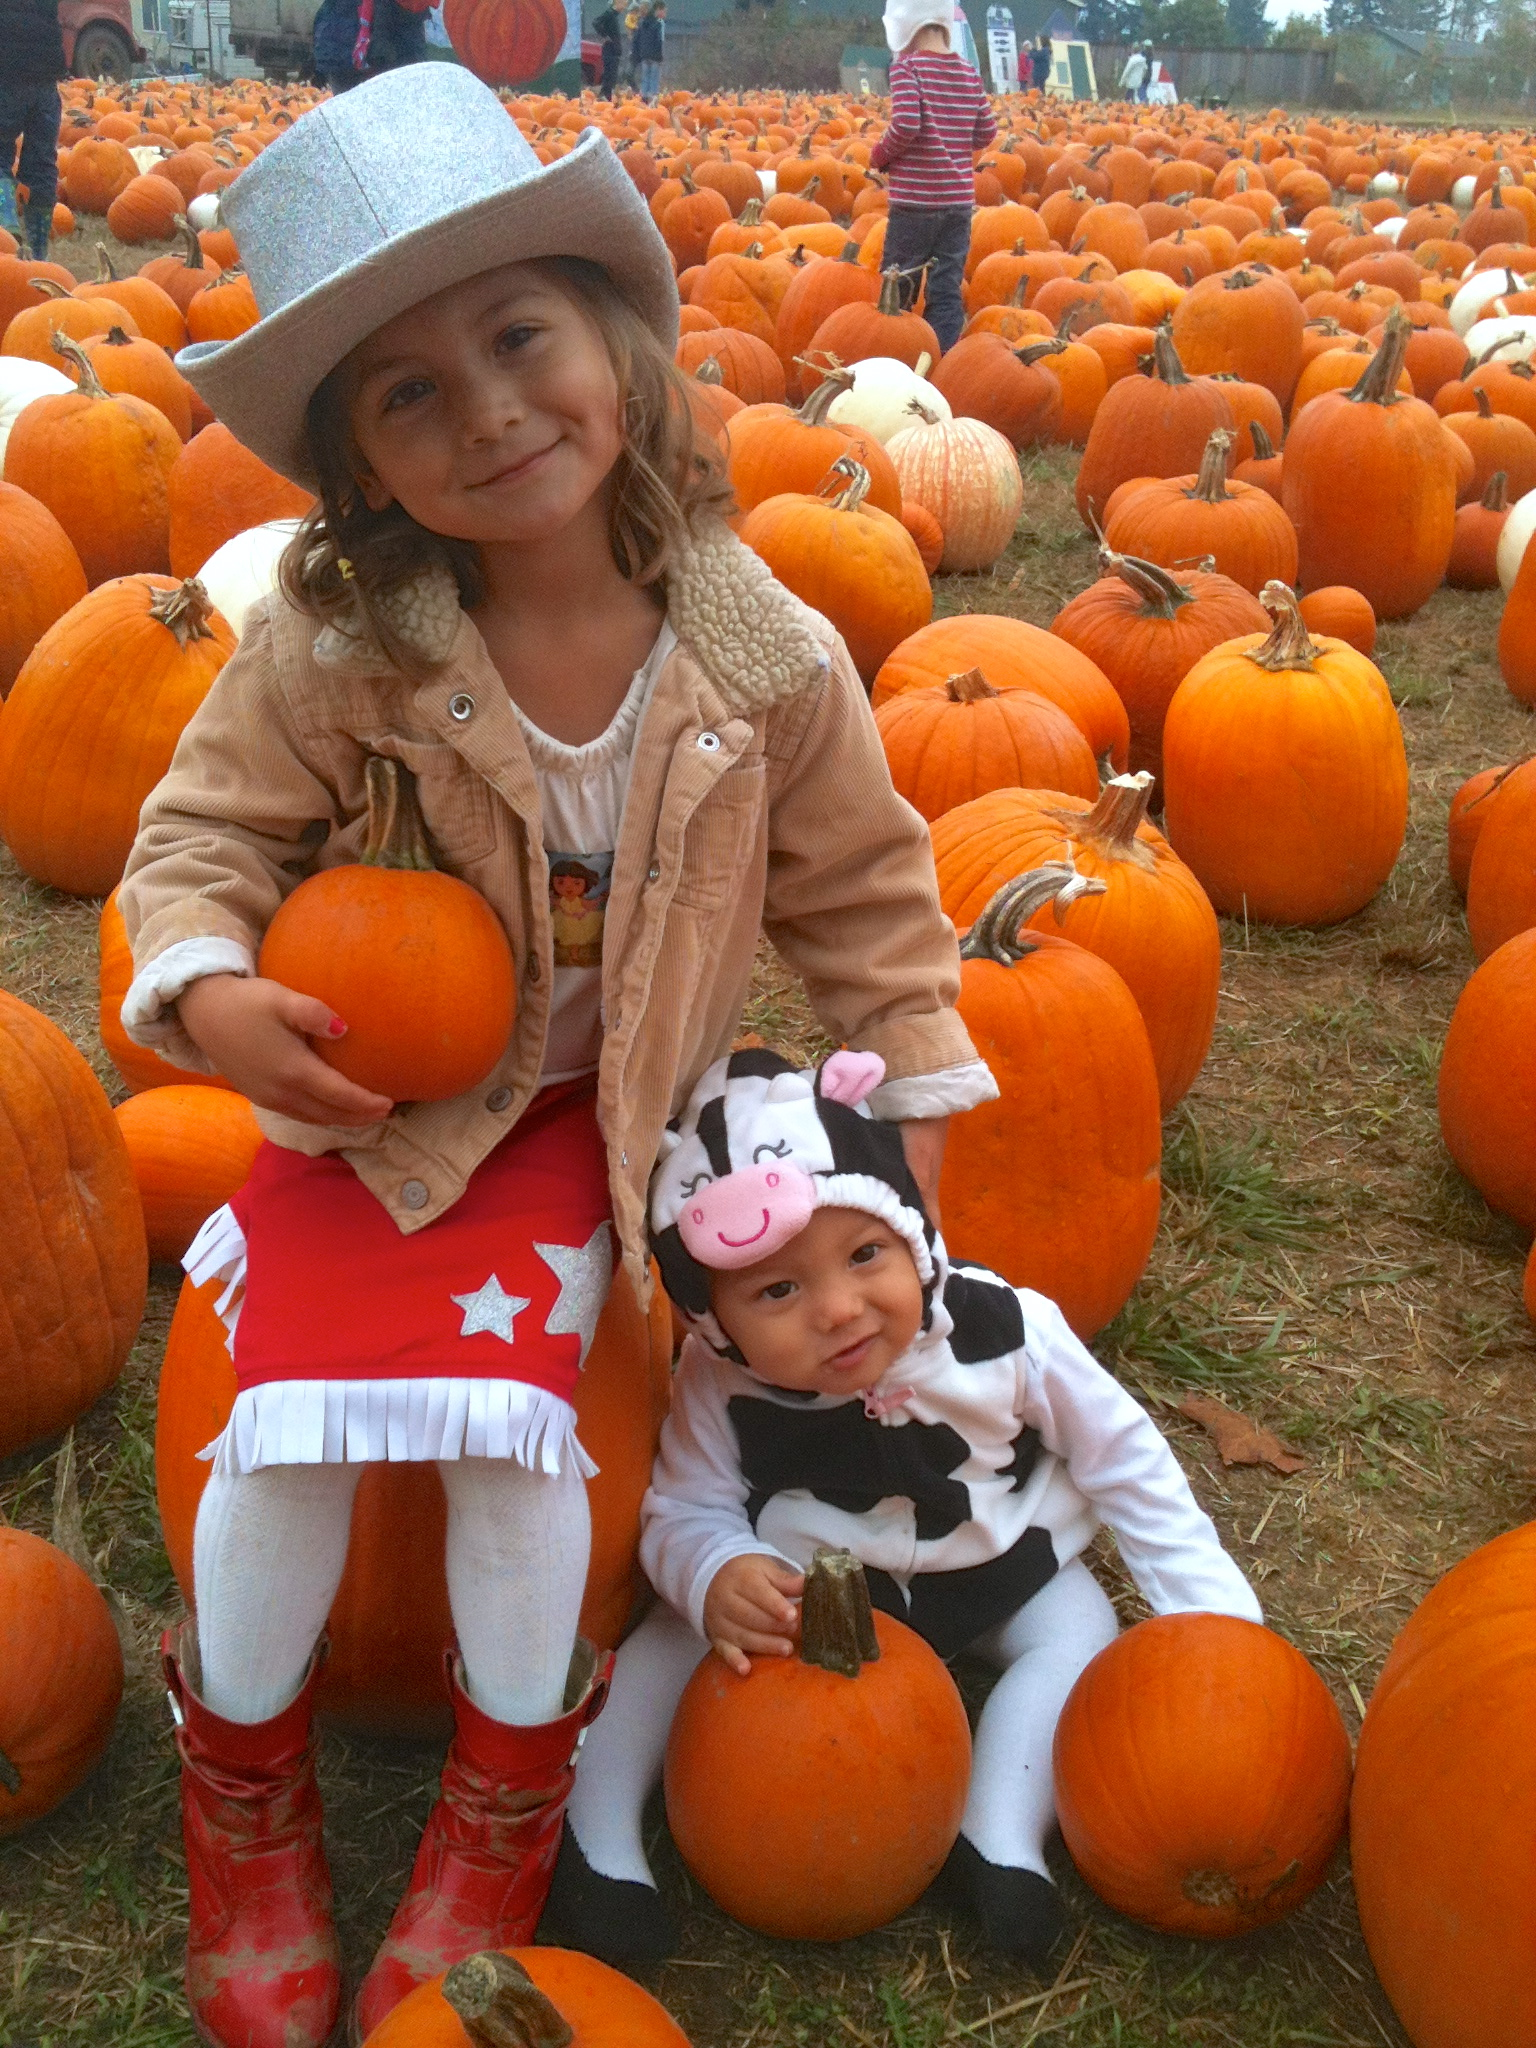 Our little ones at the pumpkin patch last year.